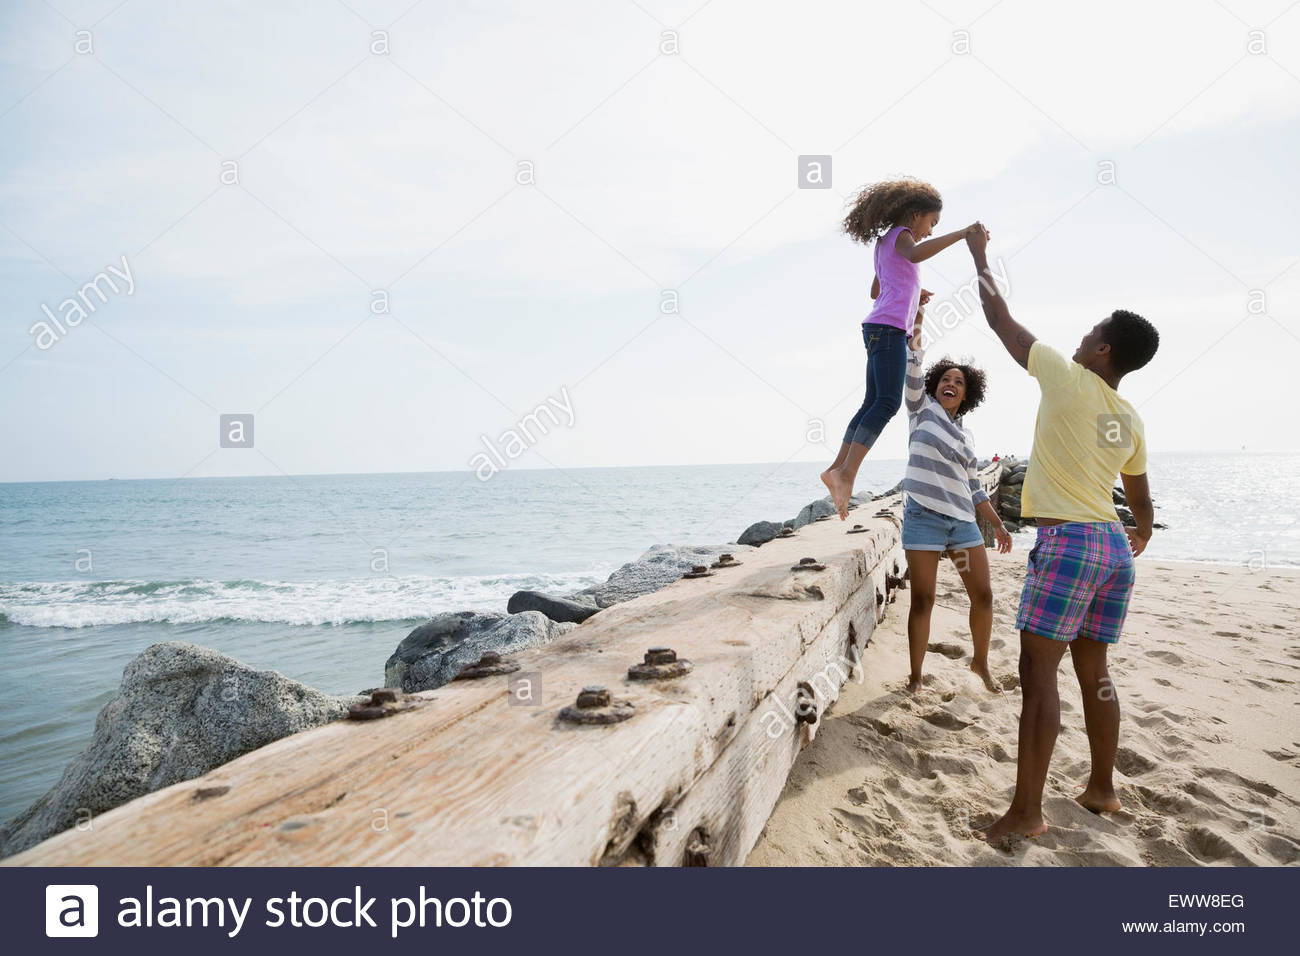 Father and mother helping daughter jump beach wall - Stock Image